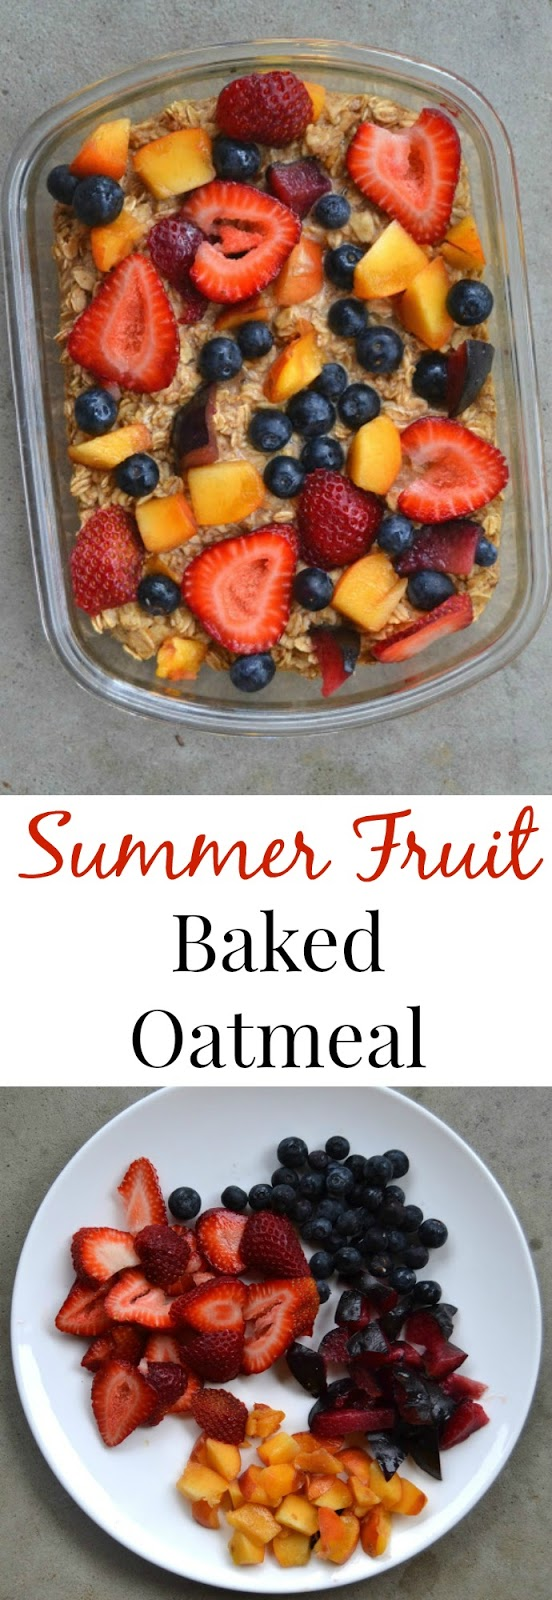 This summer fruit baked oatmeal is so easy to make and you can use any fruit that you have on hand-fresh or frozen! Prep the night before and eat the next day. www.nutritionistreviews.com